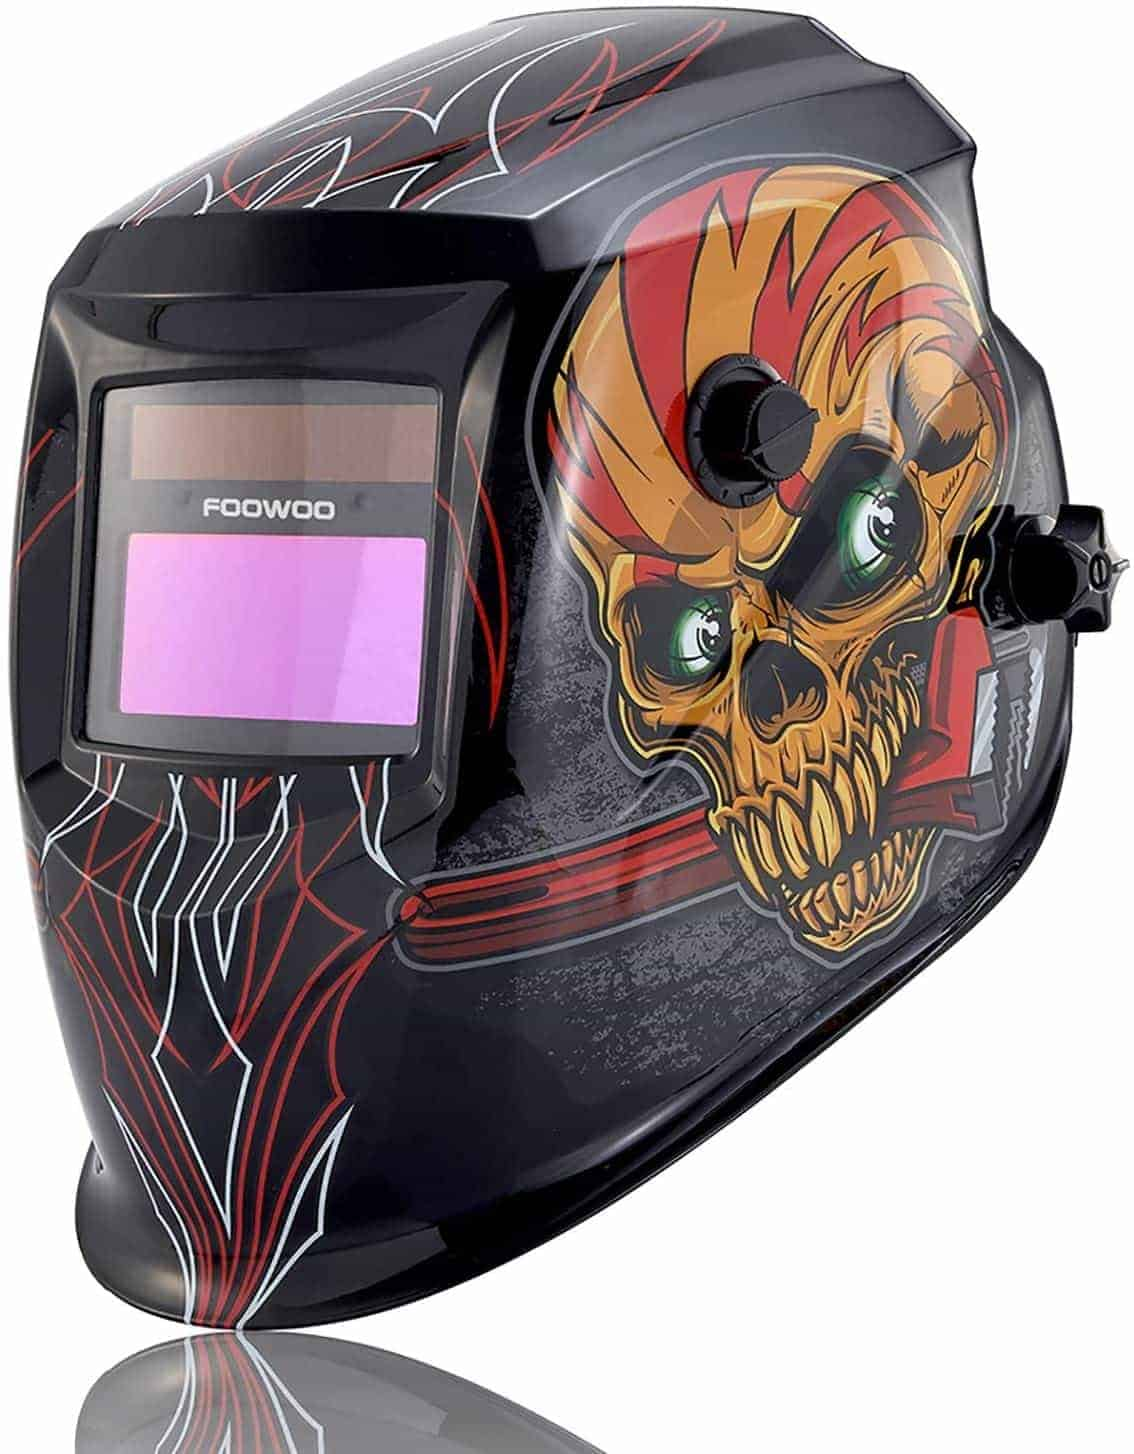 FOOWOO Solar Powered Welding Helmet with Adjustable Shade